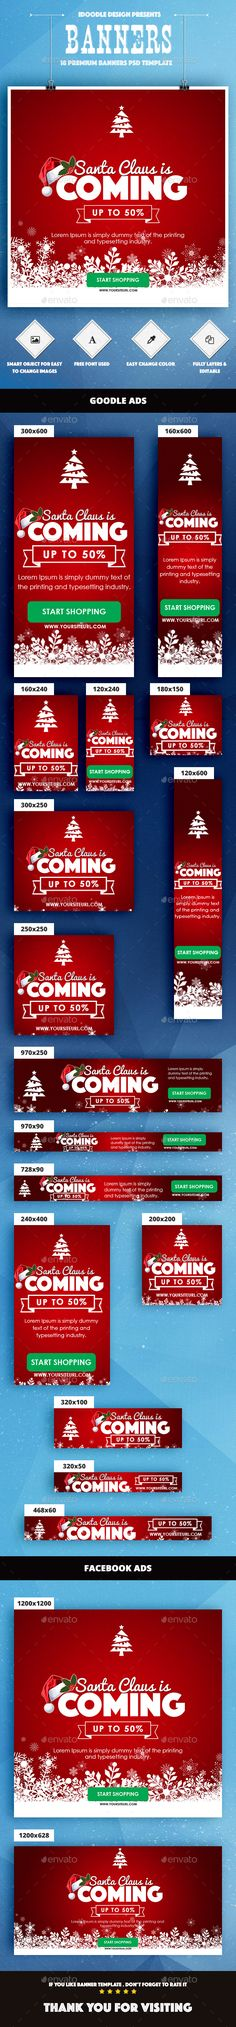 Merry Christmas Web Banners Template PSD #design #ads #xmas Download: http://graphicriver.net/item/merry-christmas-banners-ad/14066295?ref=ksioks